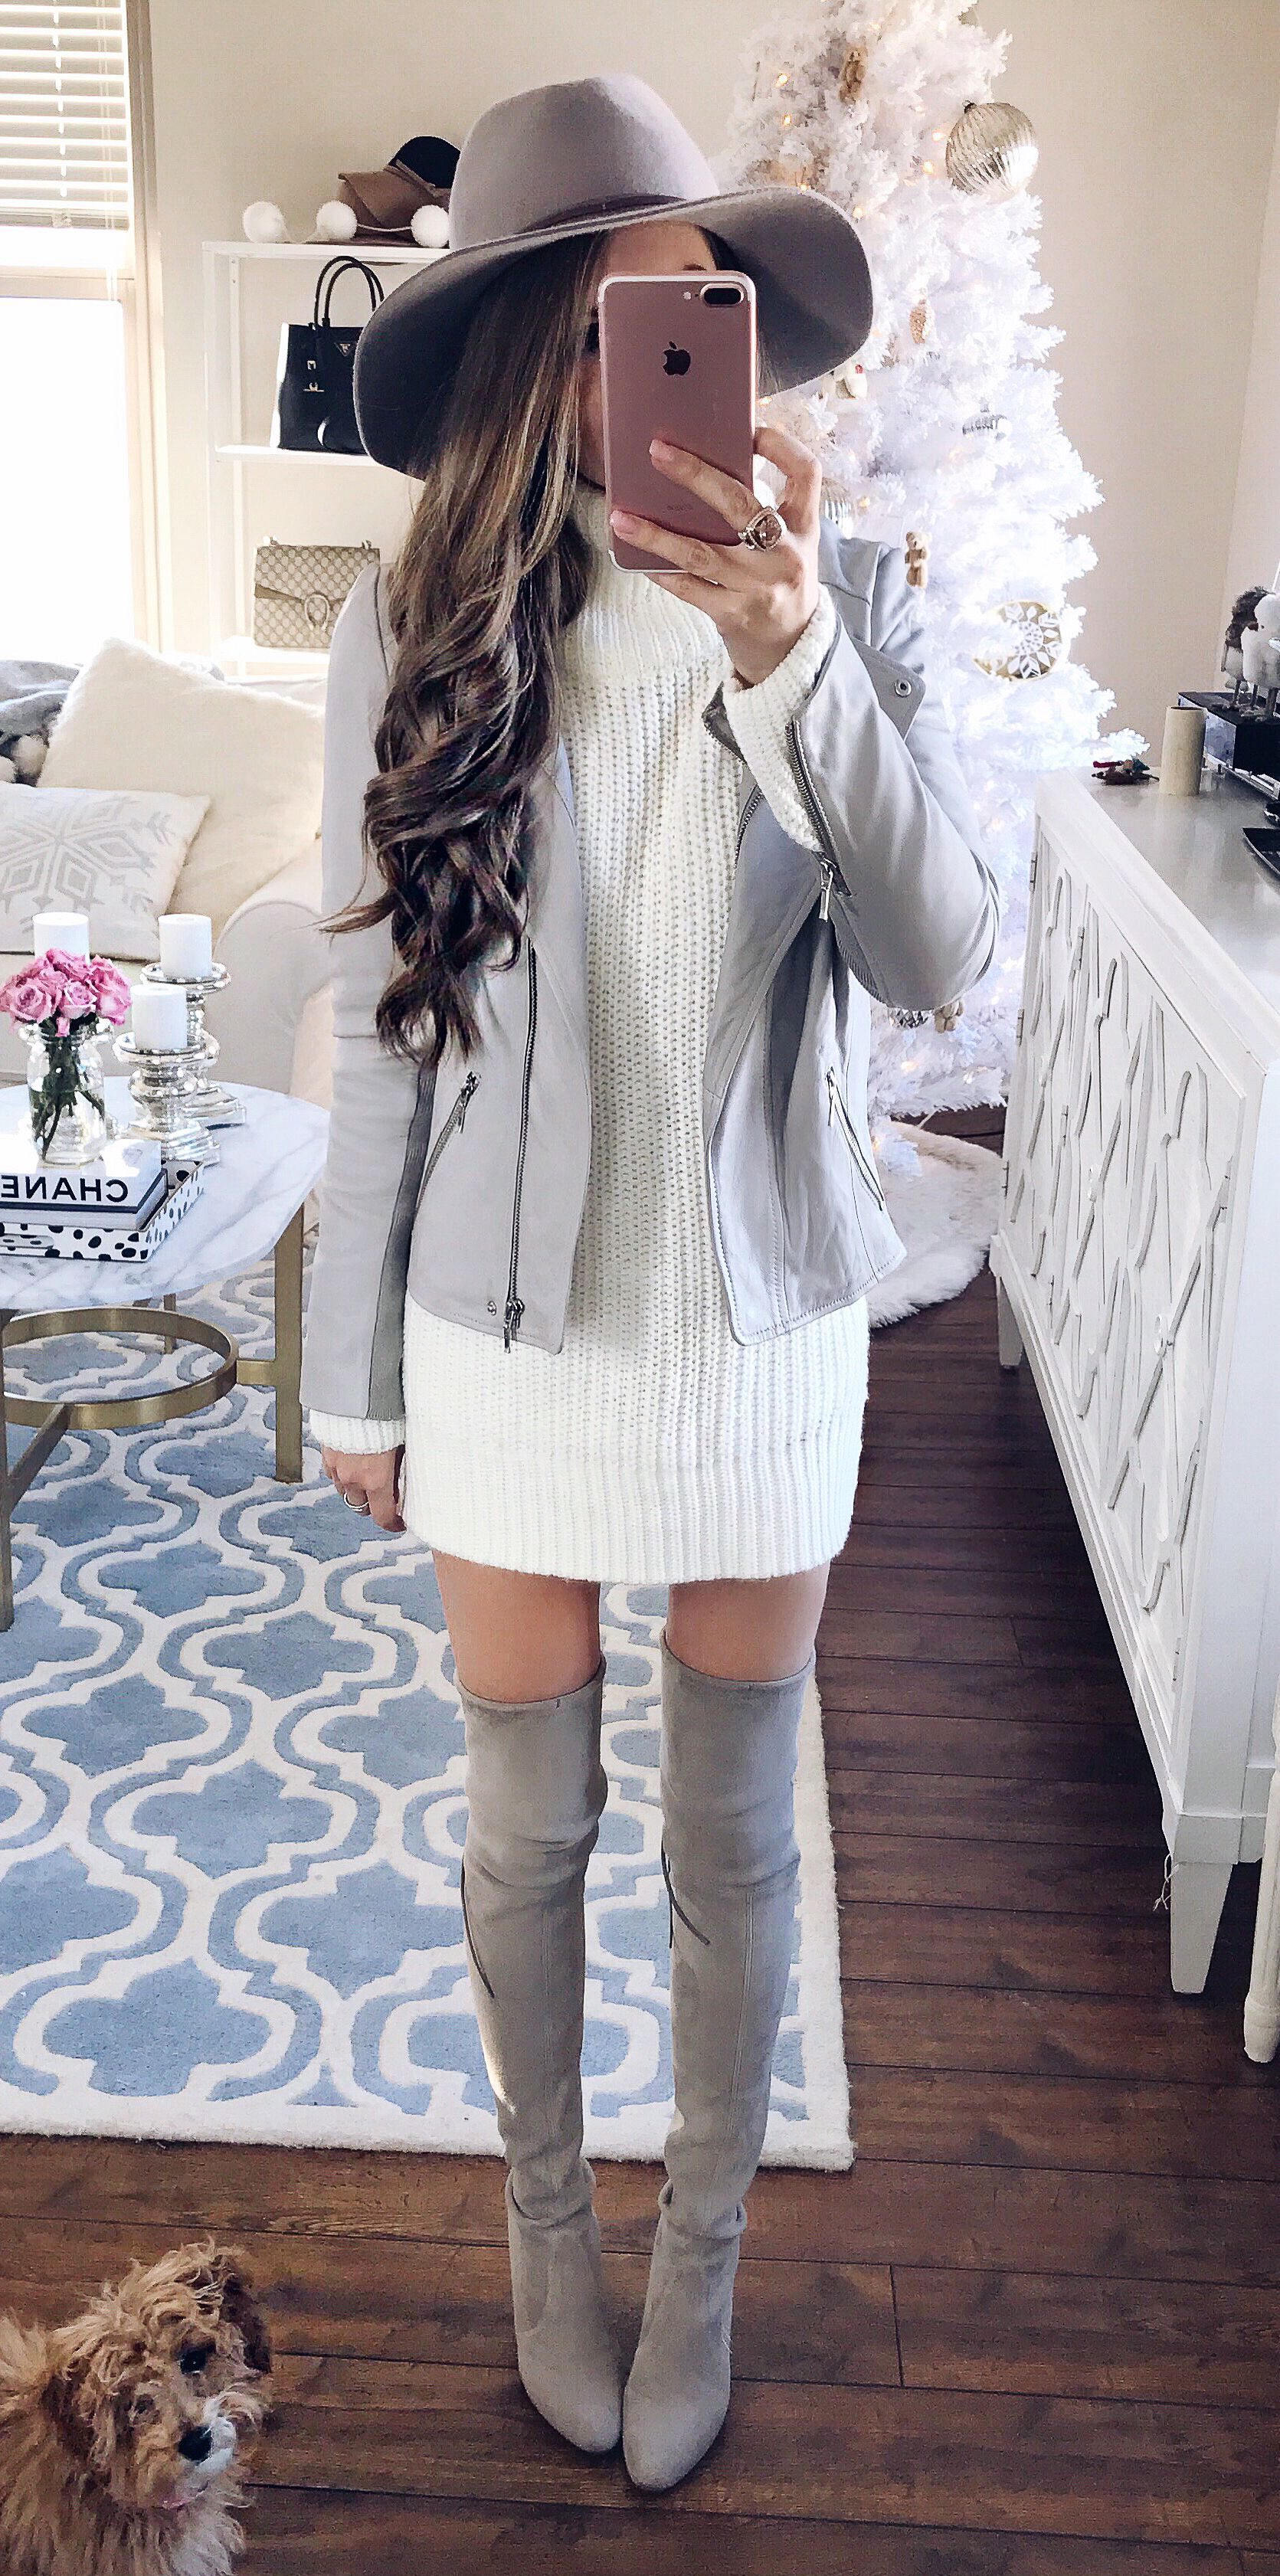 Sweater Dress Moto Jacket So Cute Autumn Fashion